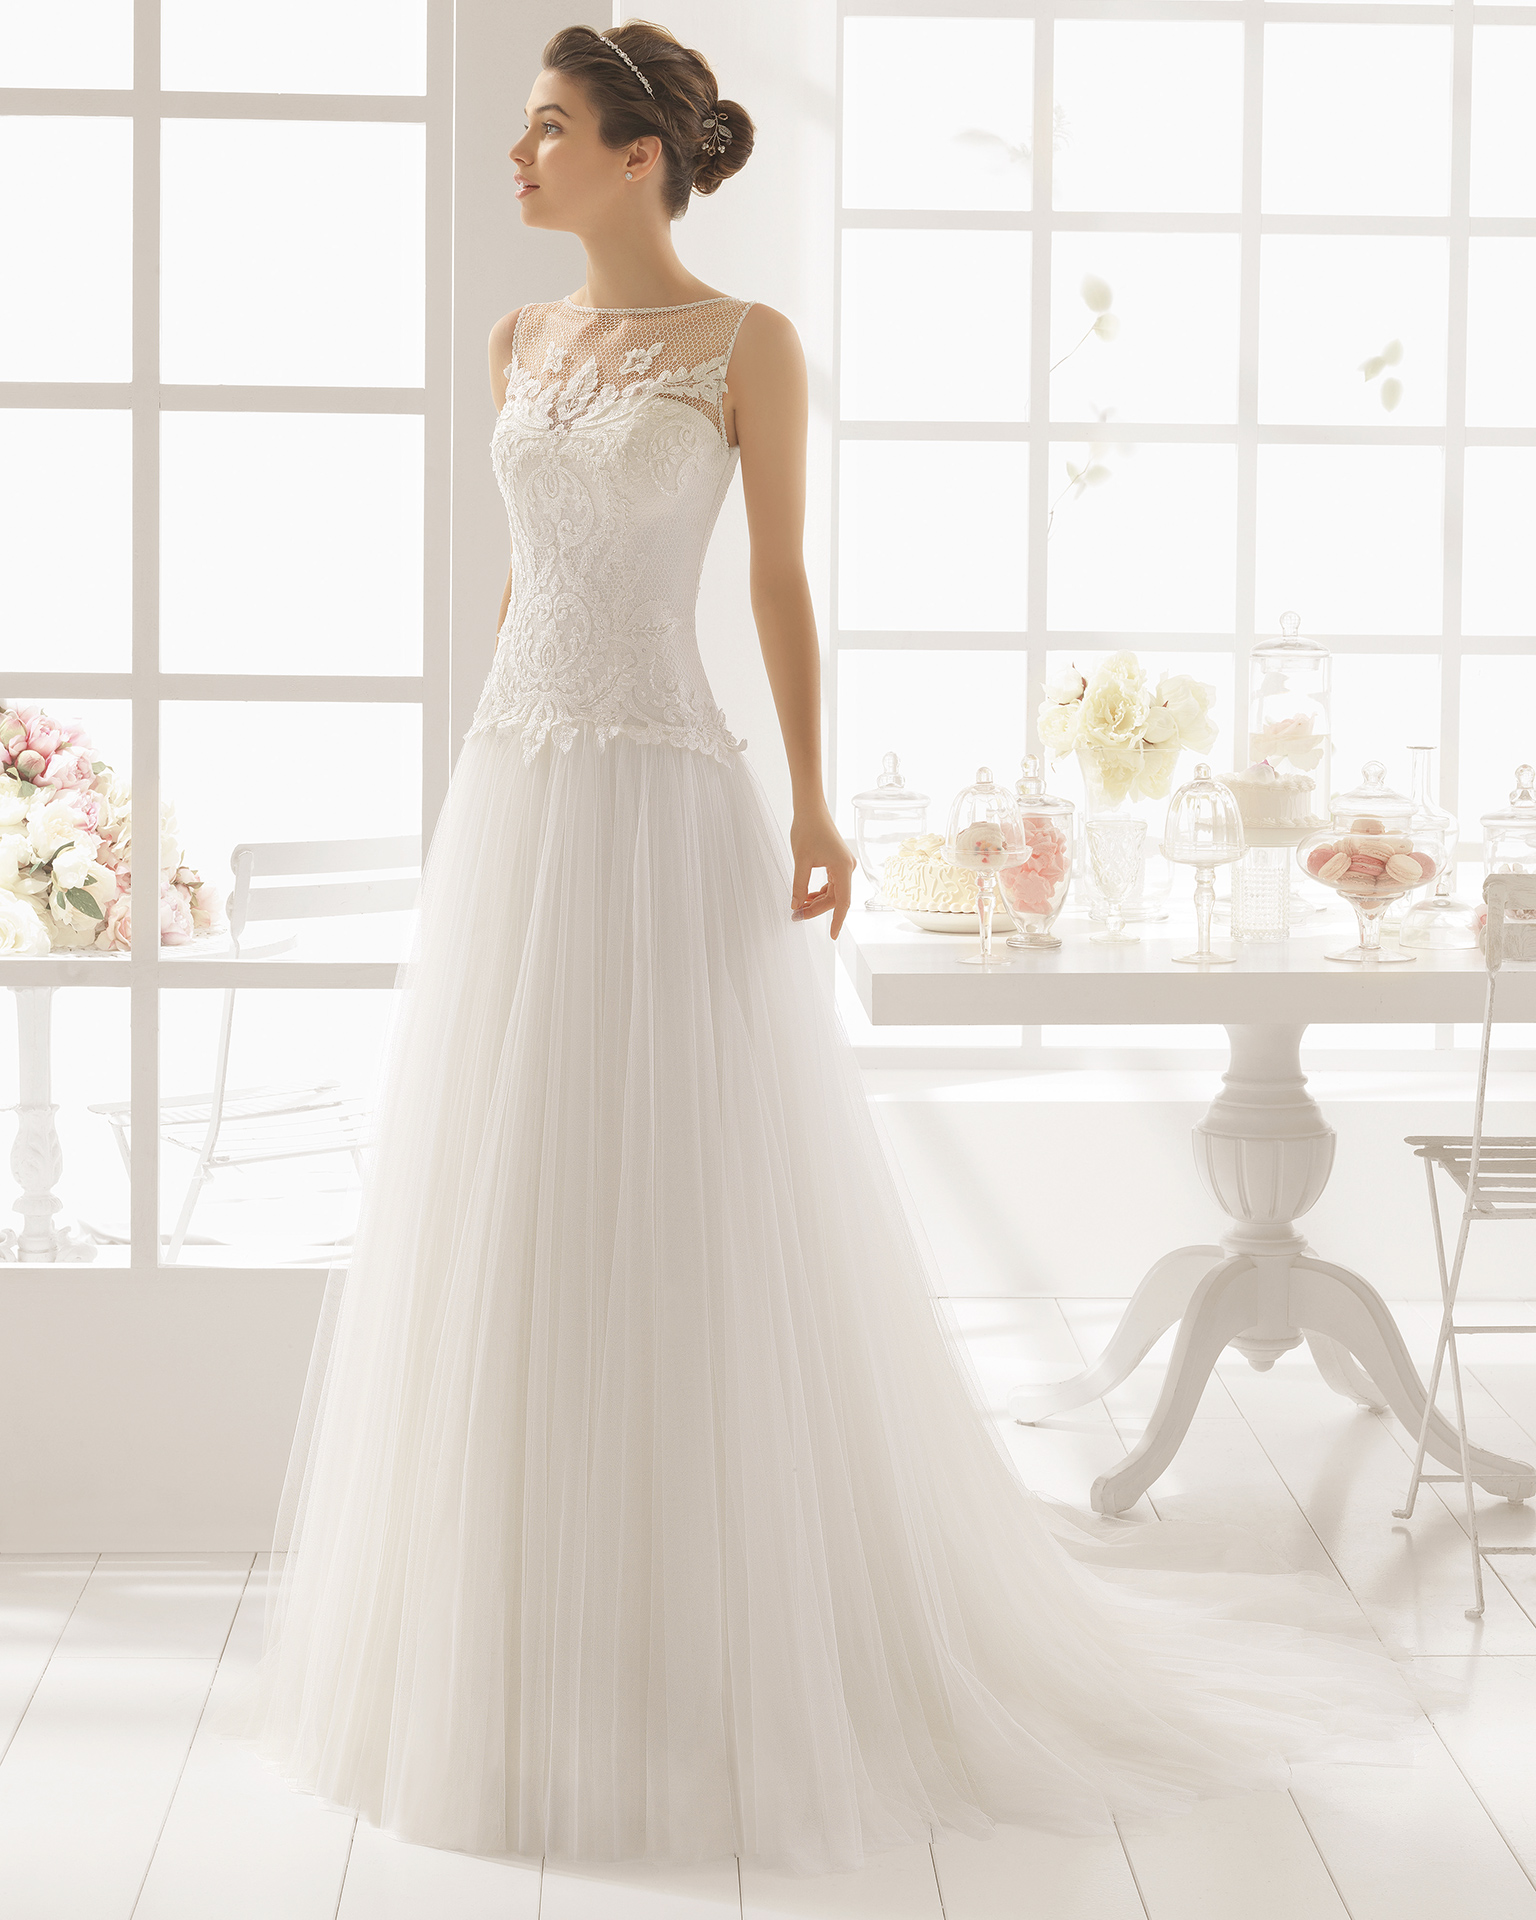 MALASIA beaded lace and tulle wedding dress.